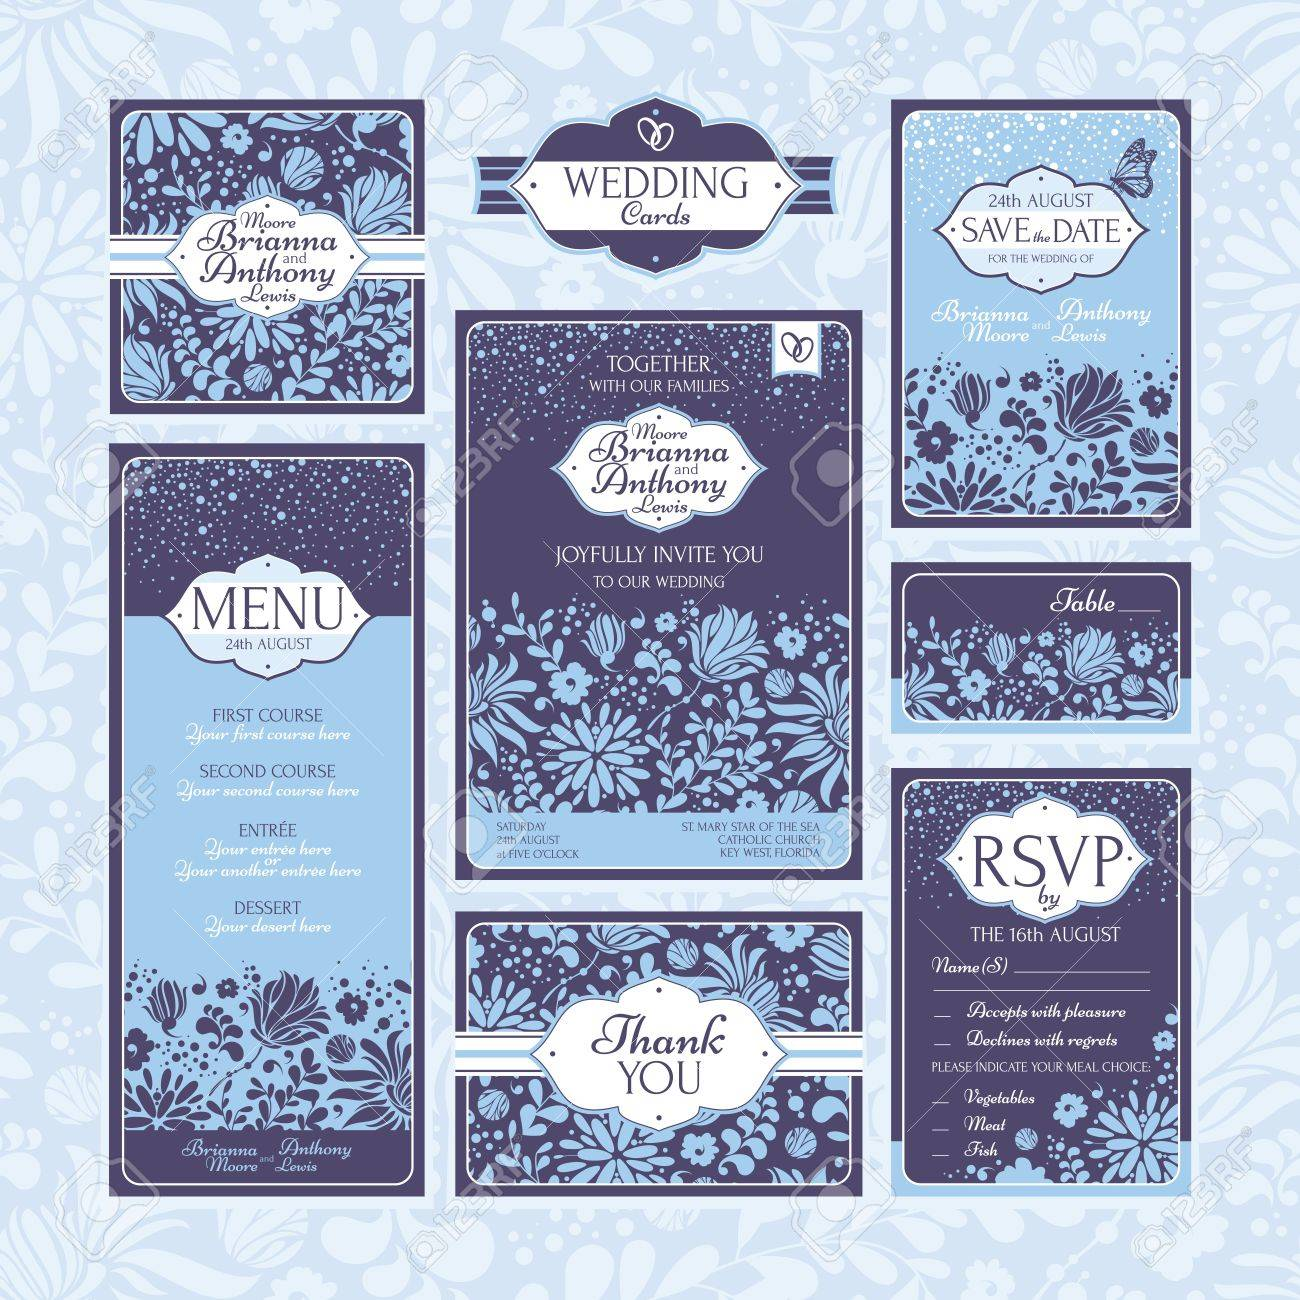 Set of floral wedding cards. Wedding invitations. Thank you card. Save the date card. Table card. RSVP card and Menu. Stock Vector - 21616764